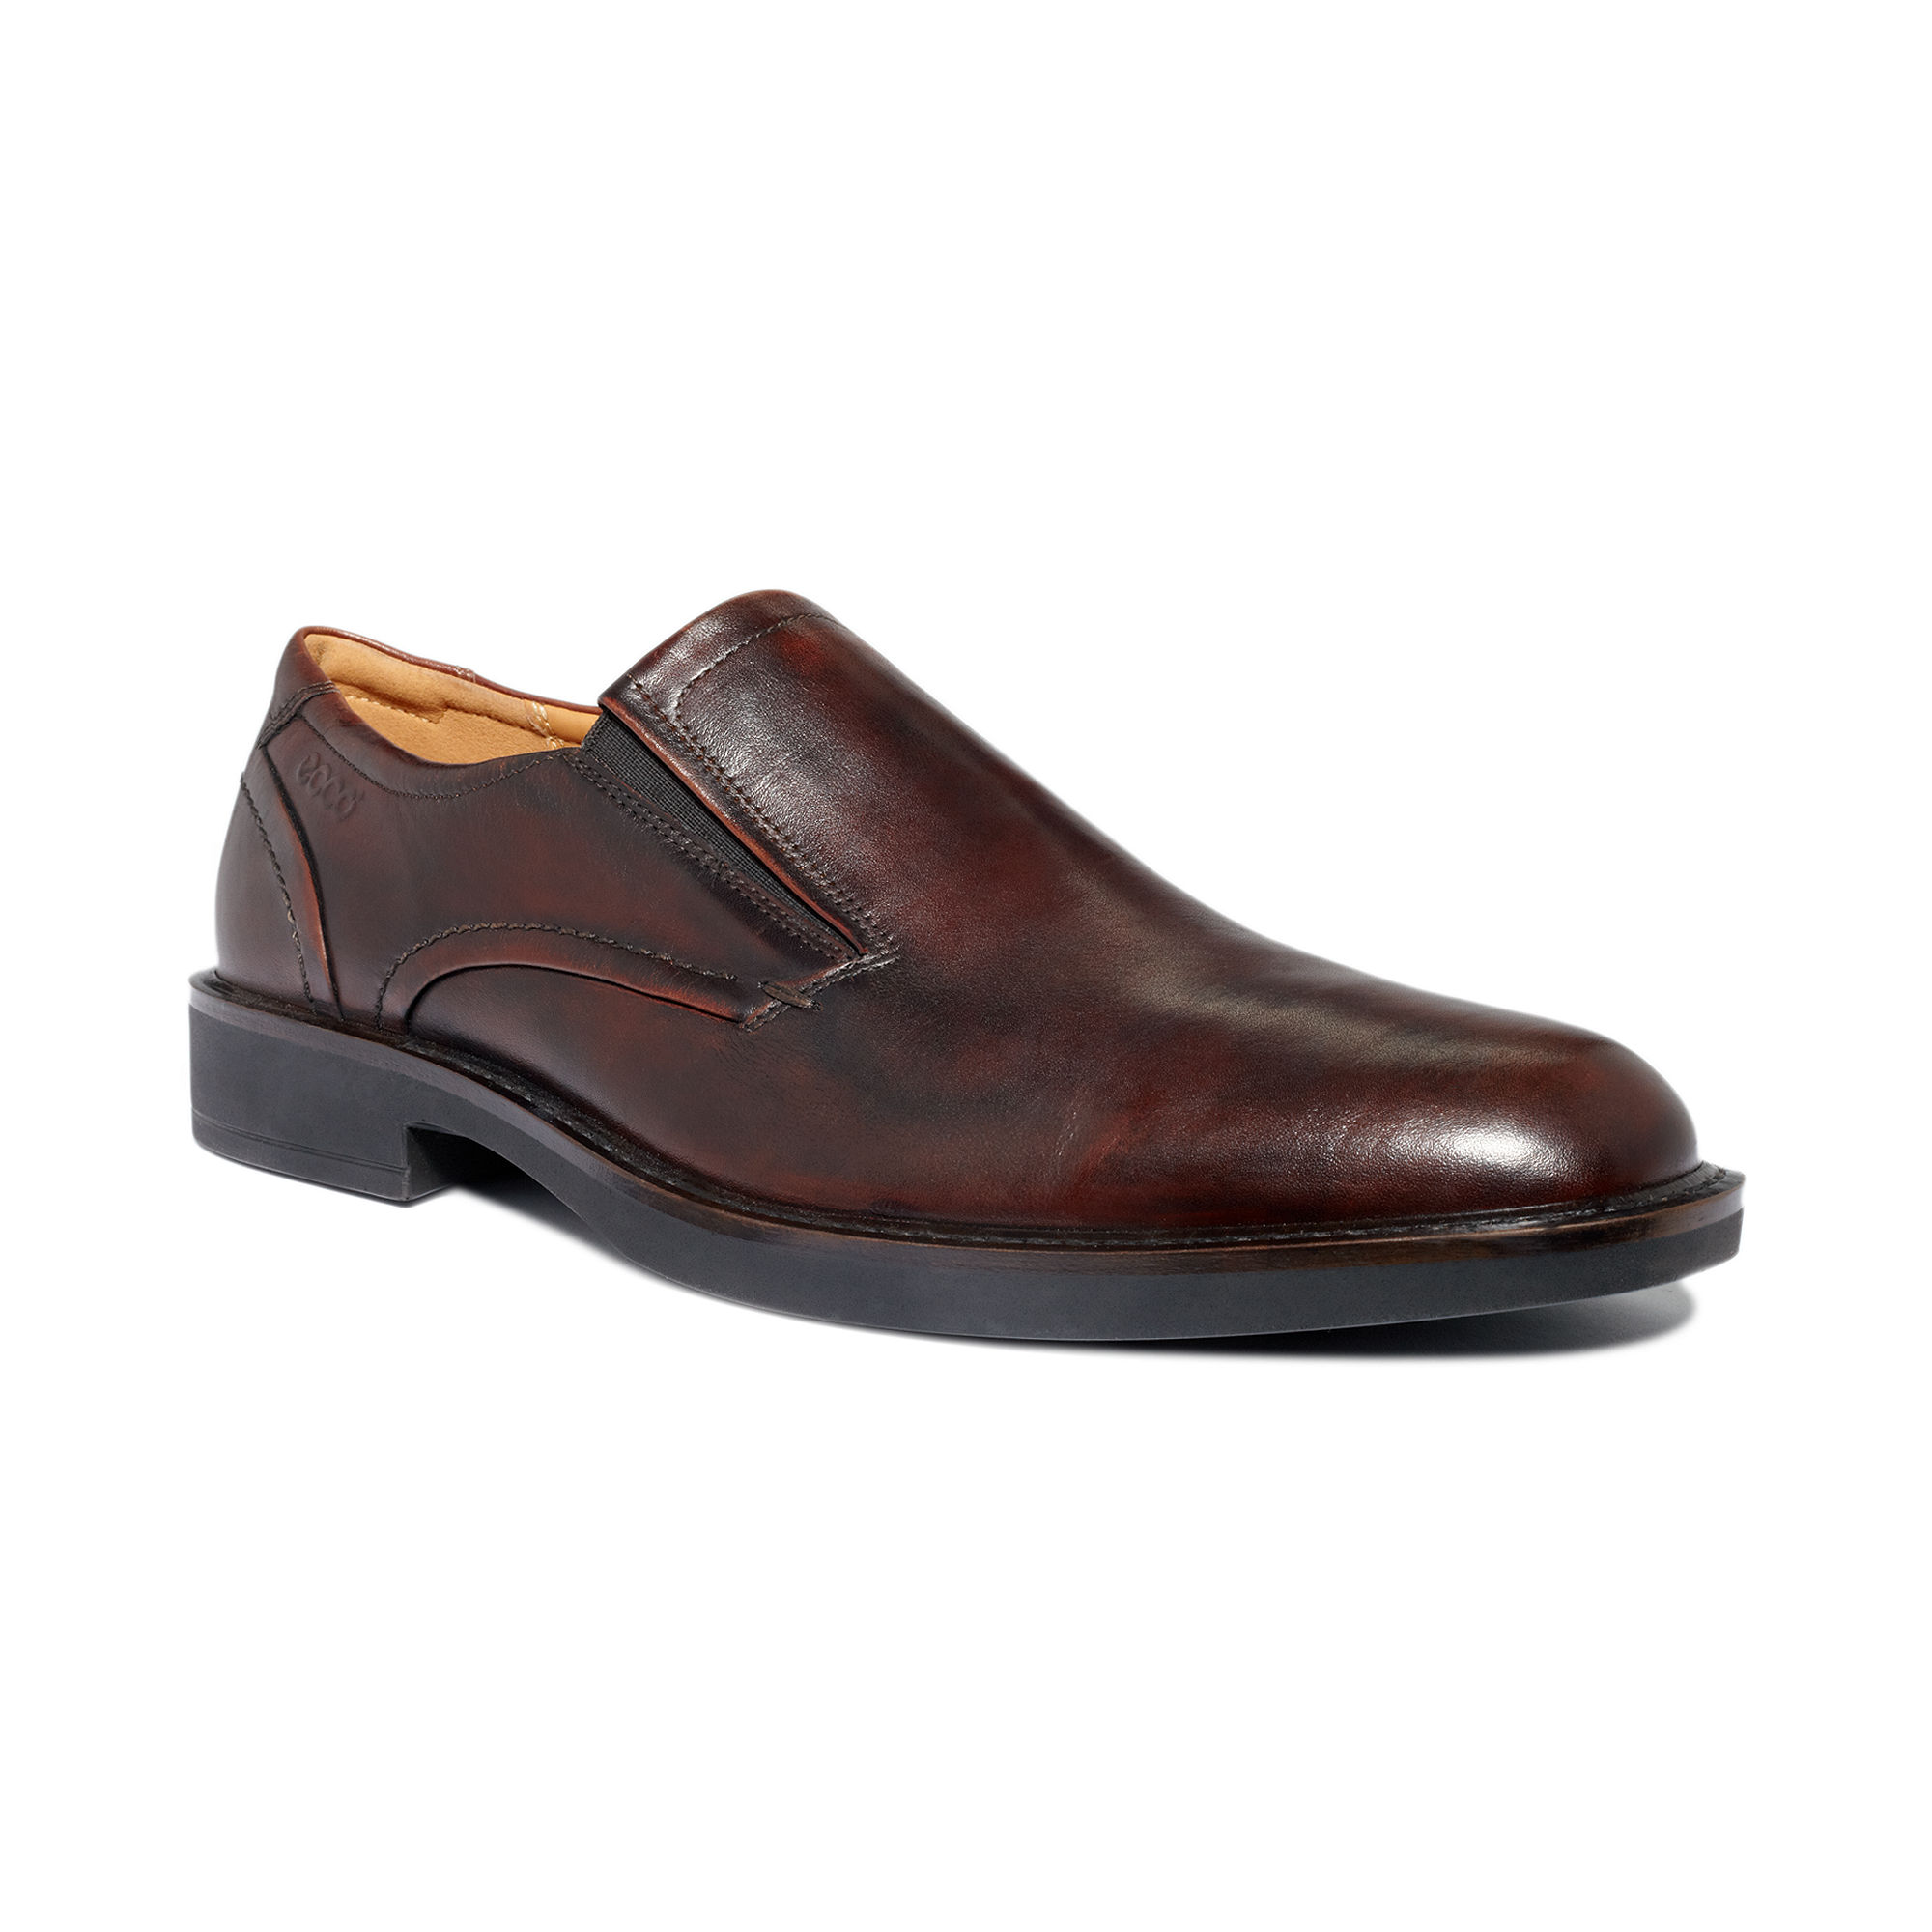 Ecco Slip On Dress Shoes